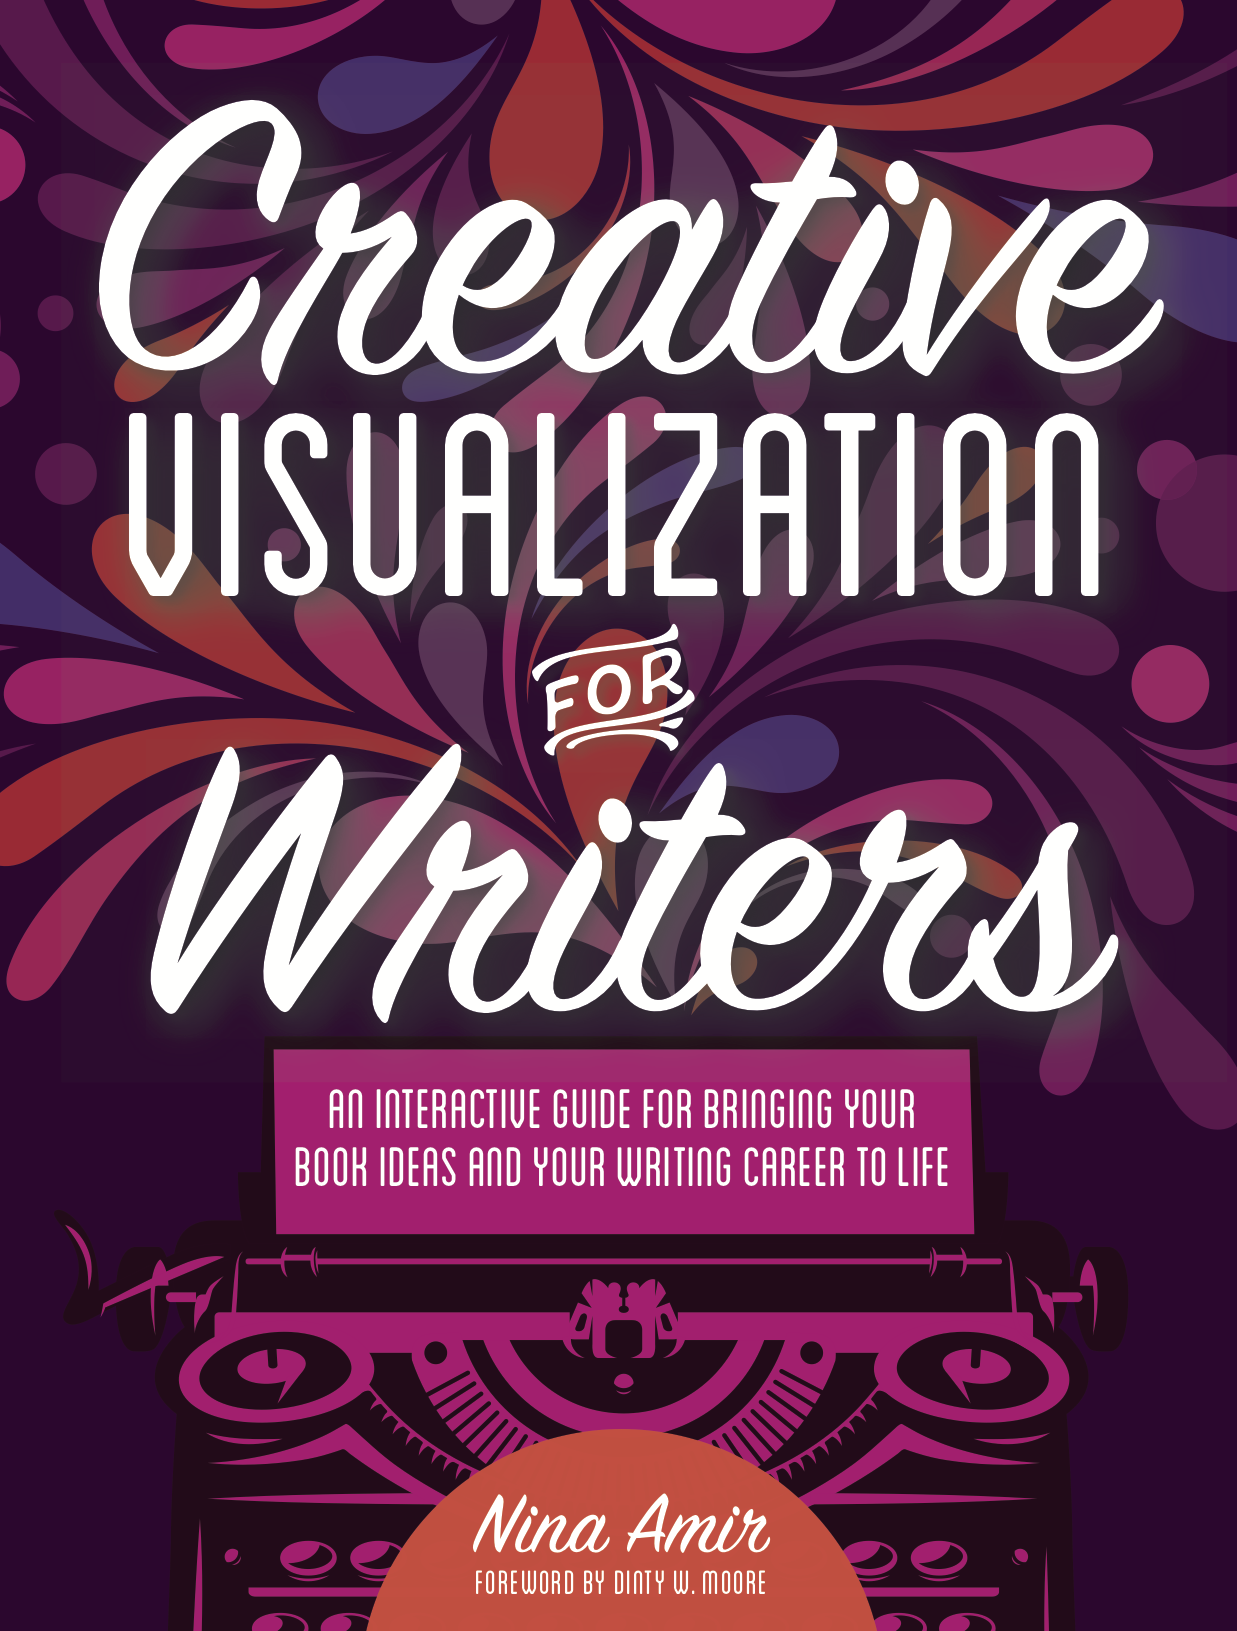 Make your writing ideas and career real